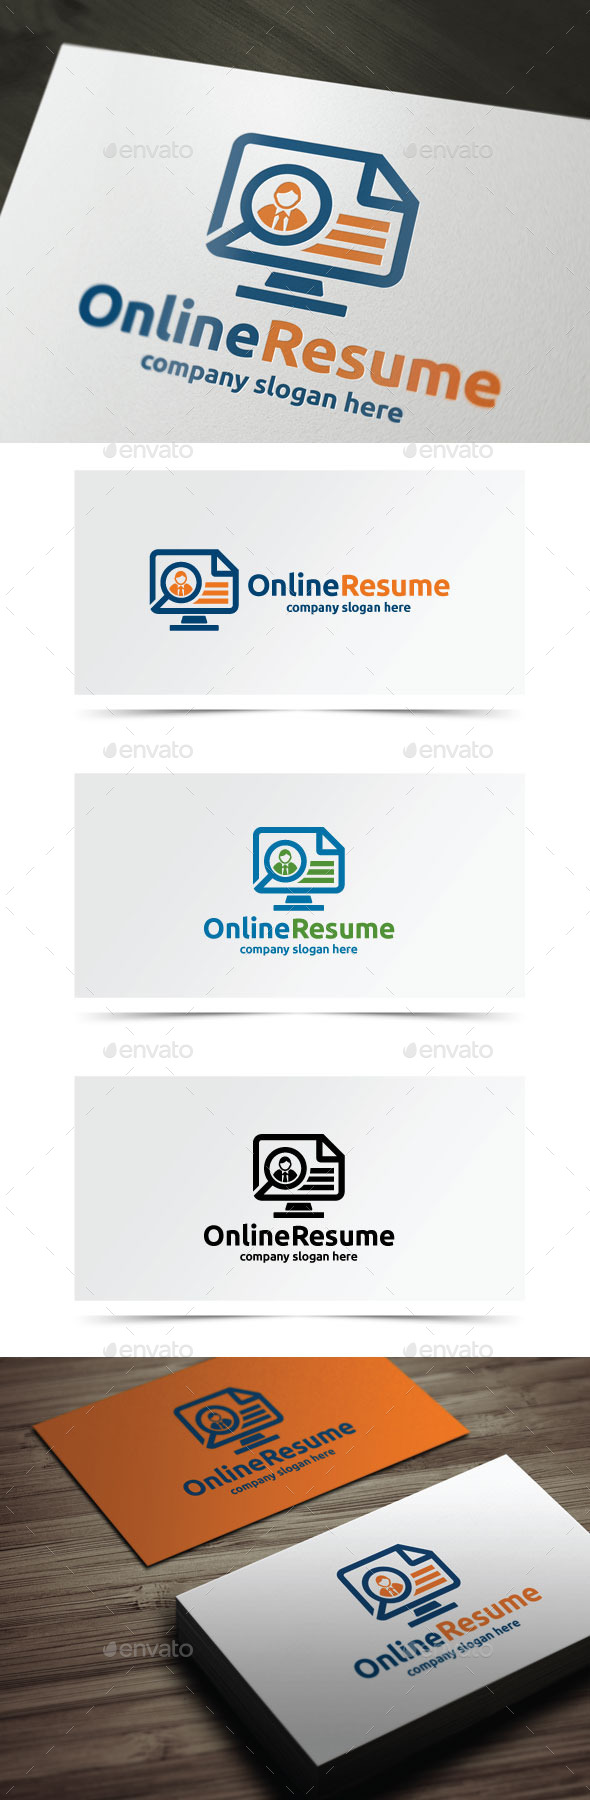 Online Resume - Objects Logo Templates